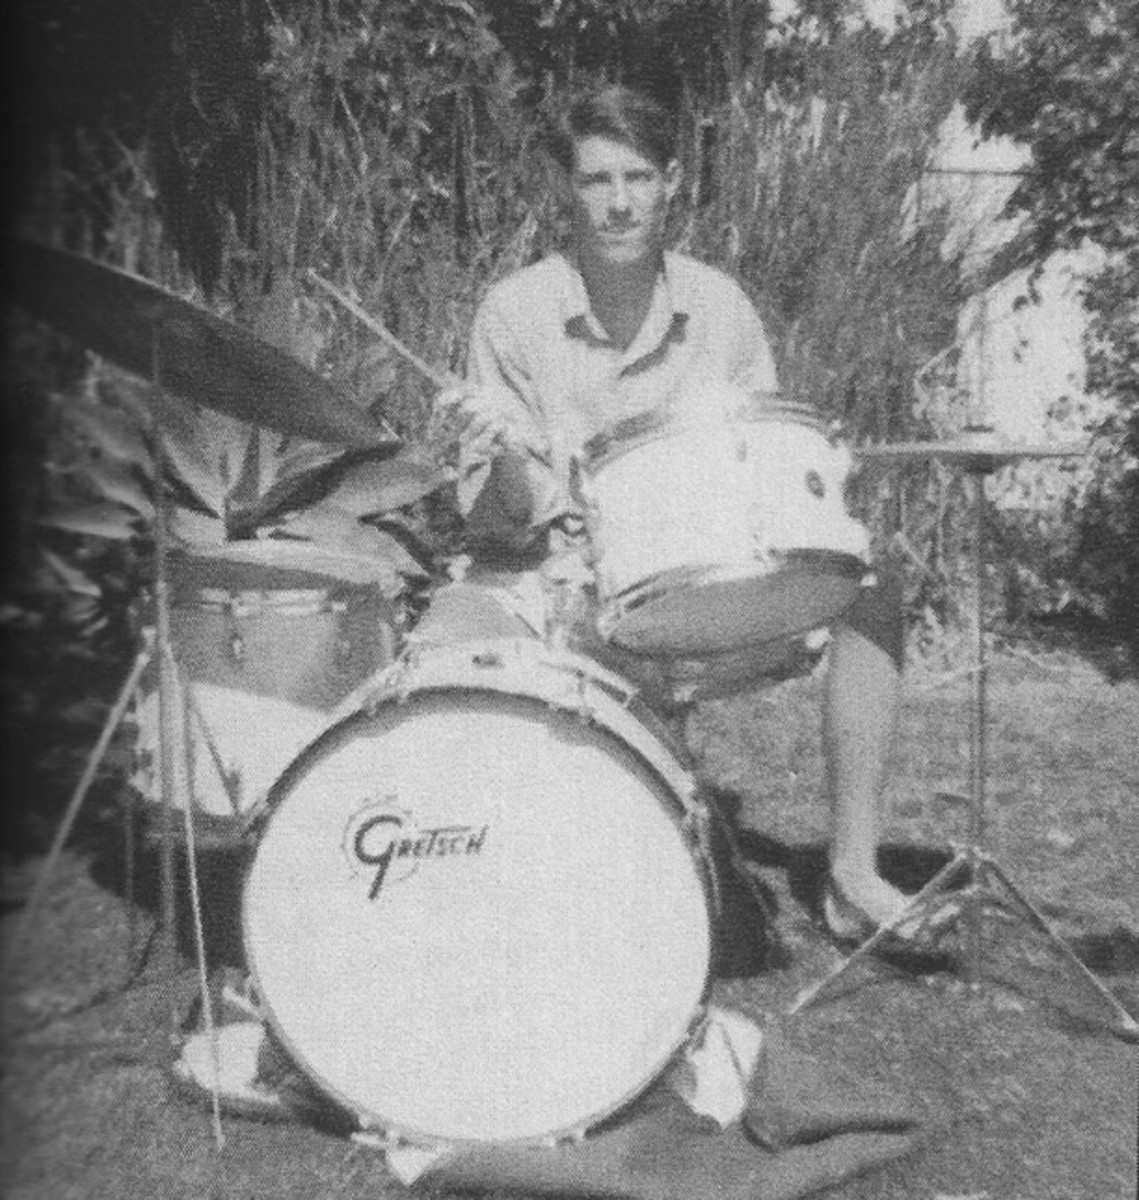 Being in a band with Jim Morrison wasn't easy, to say the least. Drummer John Densmore (shown here with his first drum kit) recalls getting so fed up during sessions for 'Waiting For the Sun' that he threw his drumsticks in the air and quit. But the lure of the music was too great to resist; Densmore returned the next day. Photo courtesy John Densmore Facebook page.